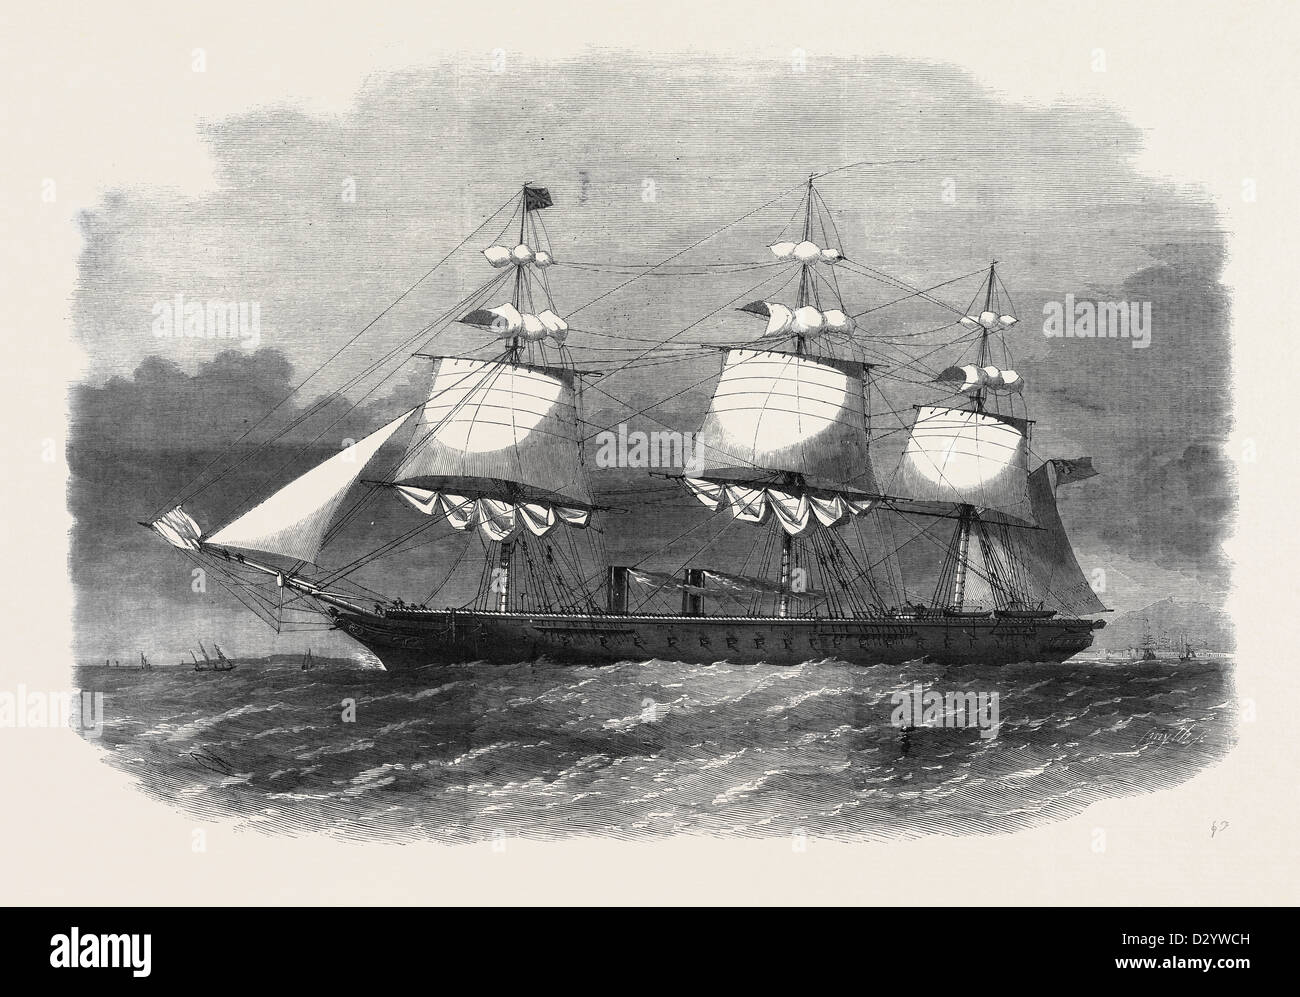 HER MAJESTY'S IRONCLAD STEAMFRIGATE WARRIOR 40 GUNS - Stock Image